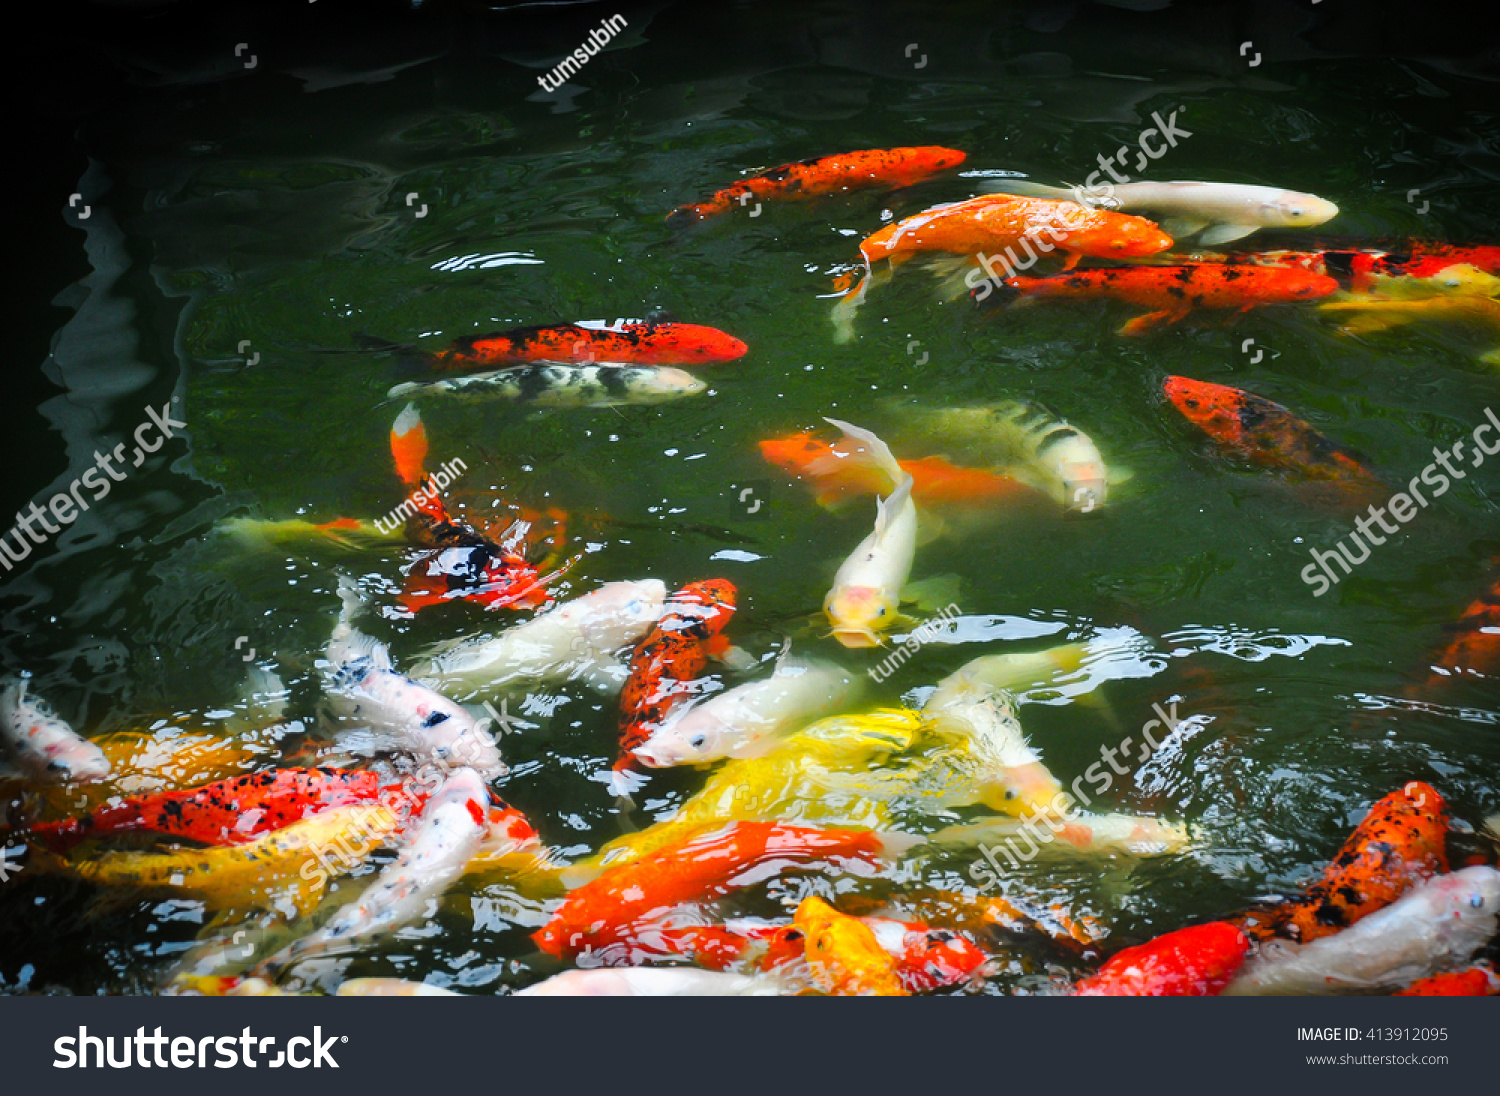 Freshwater fish koi - Save To A Lightbox